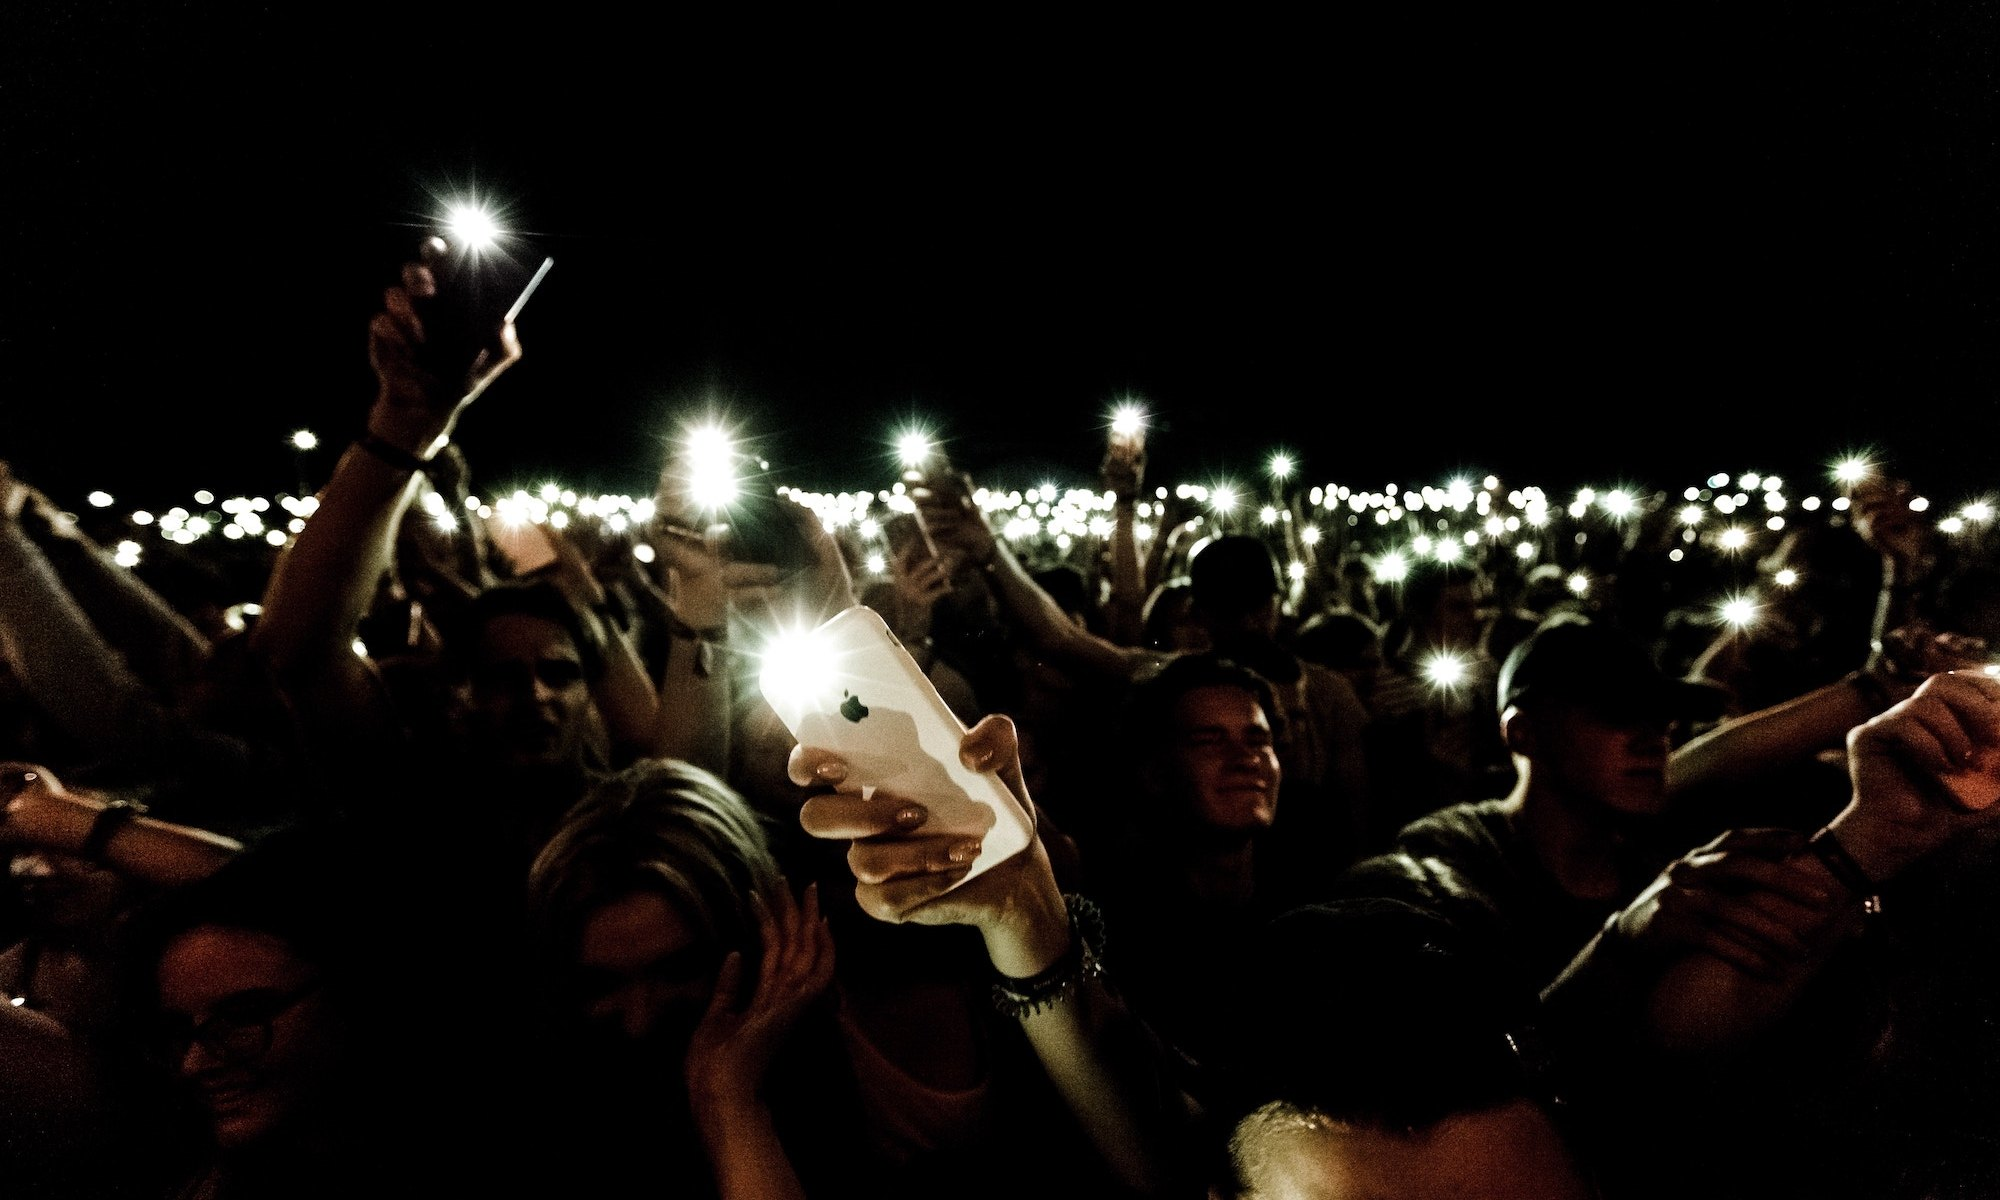 Large crowd of people at a night, outdoor event holding their smartphones over their heads and taking flash pictures.